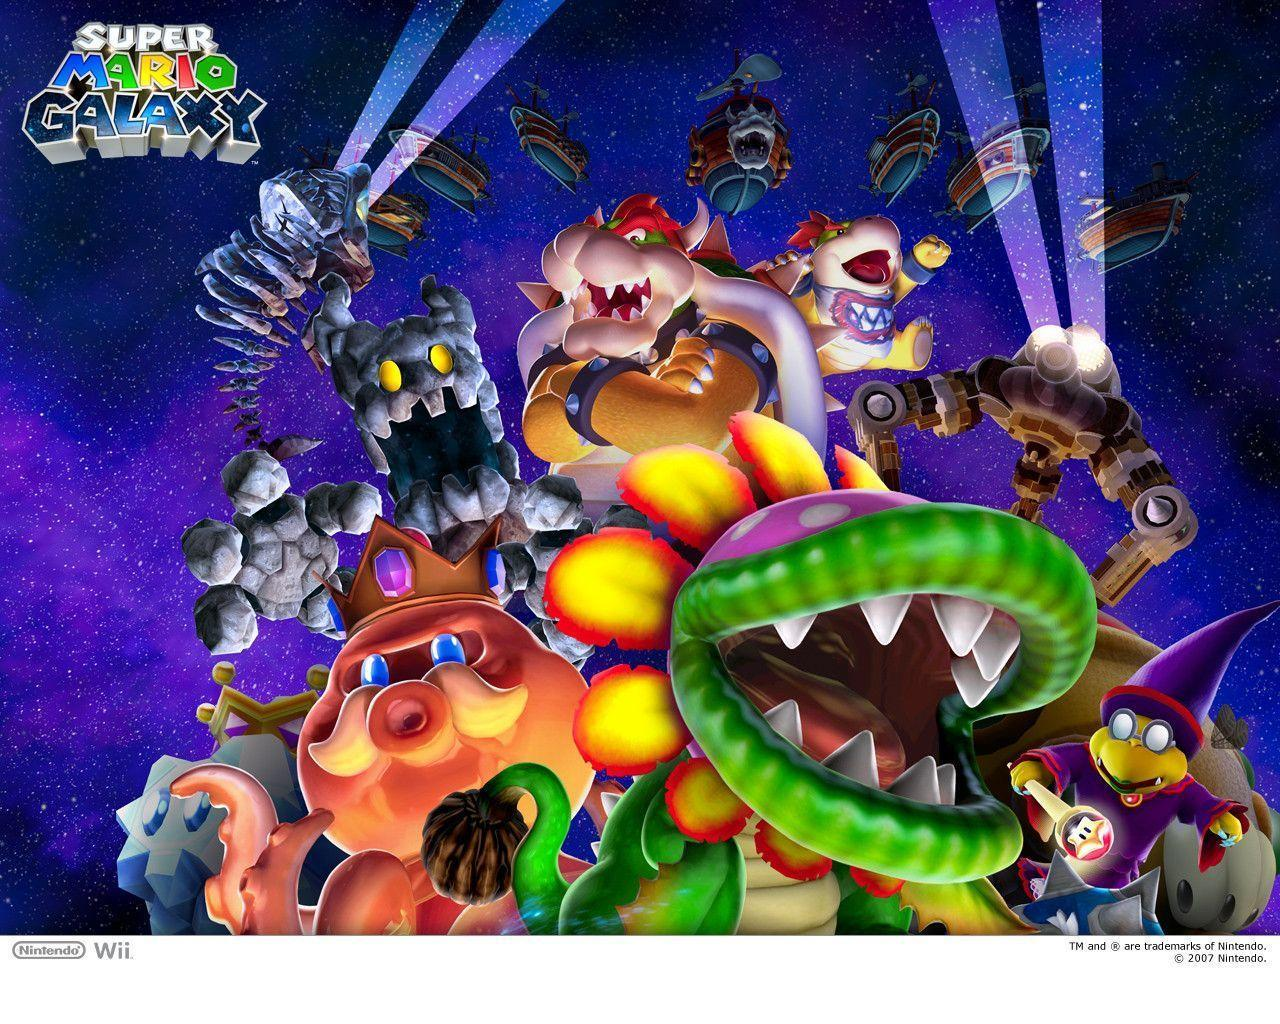 Super Mario Galaxy 2 Wallpapers HD - Wallpaper Cave